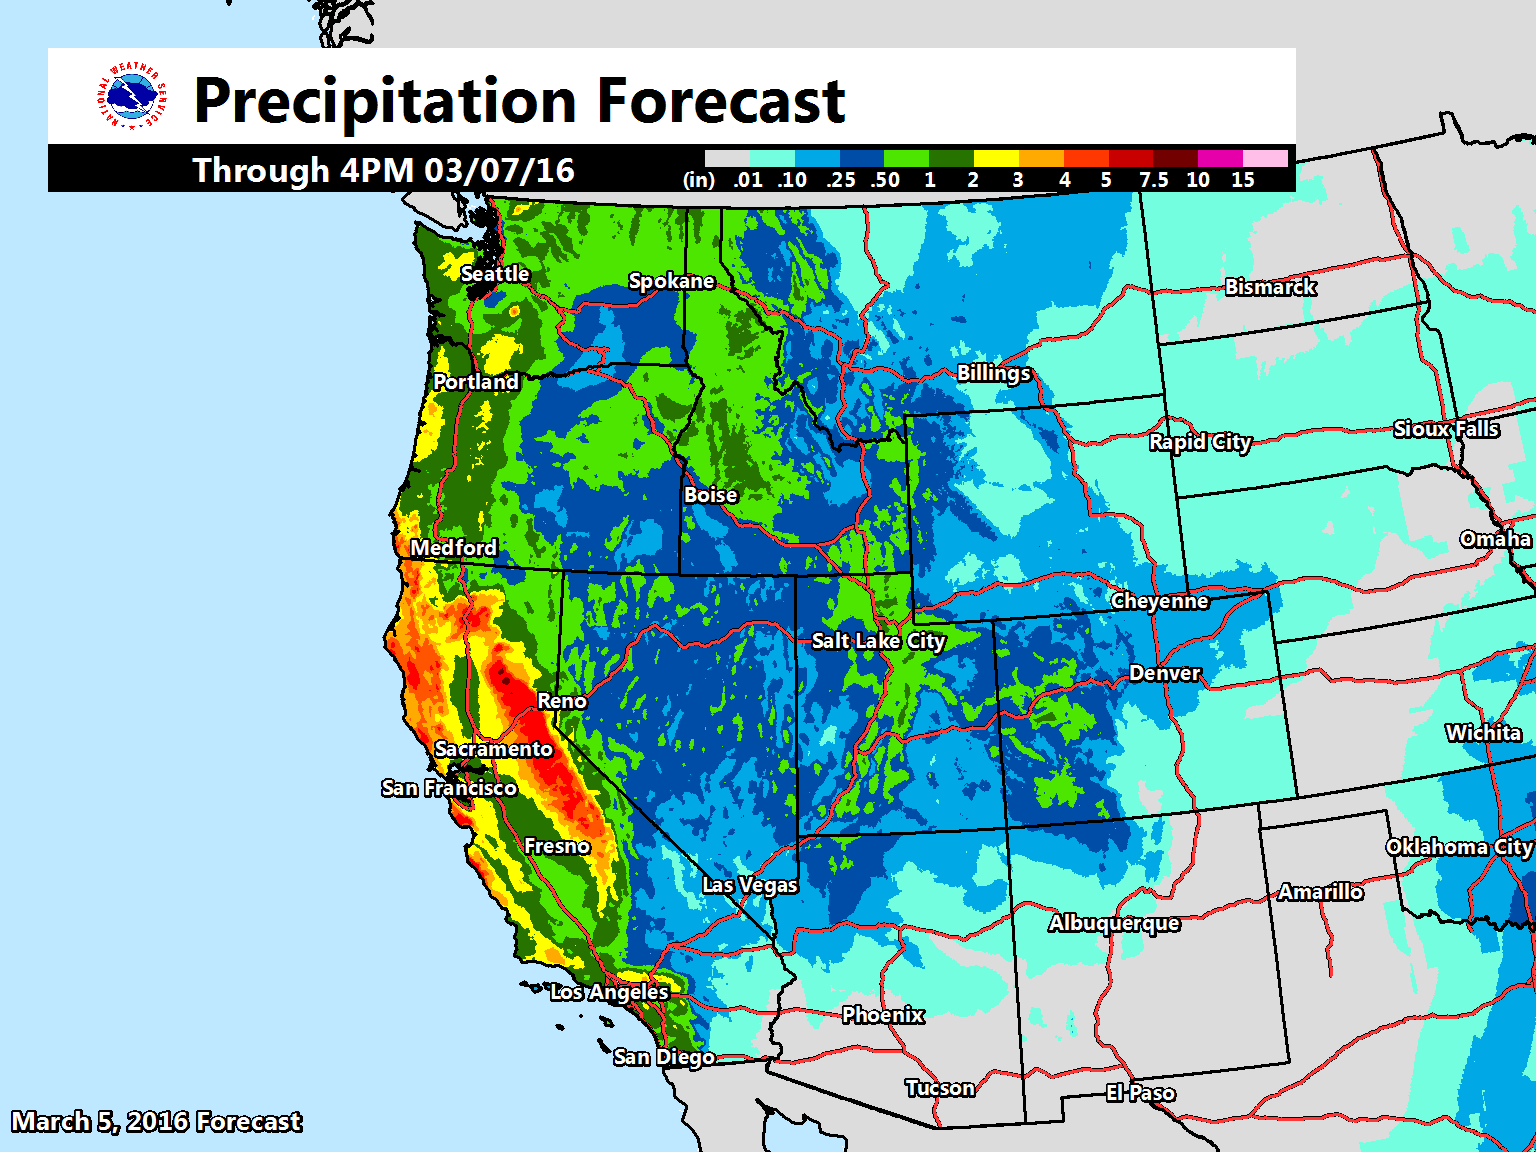 Wet Conditions Expected Across Much Of The Western U S Over The Next 3 Days